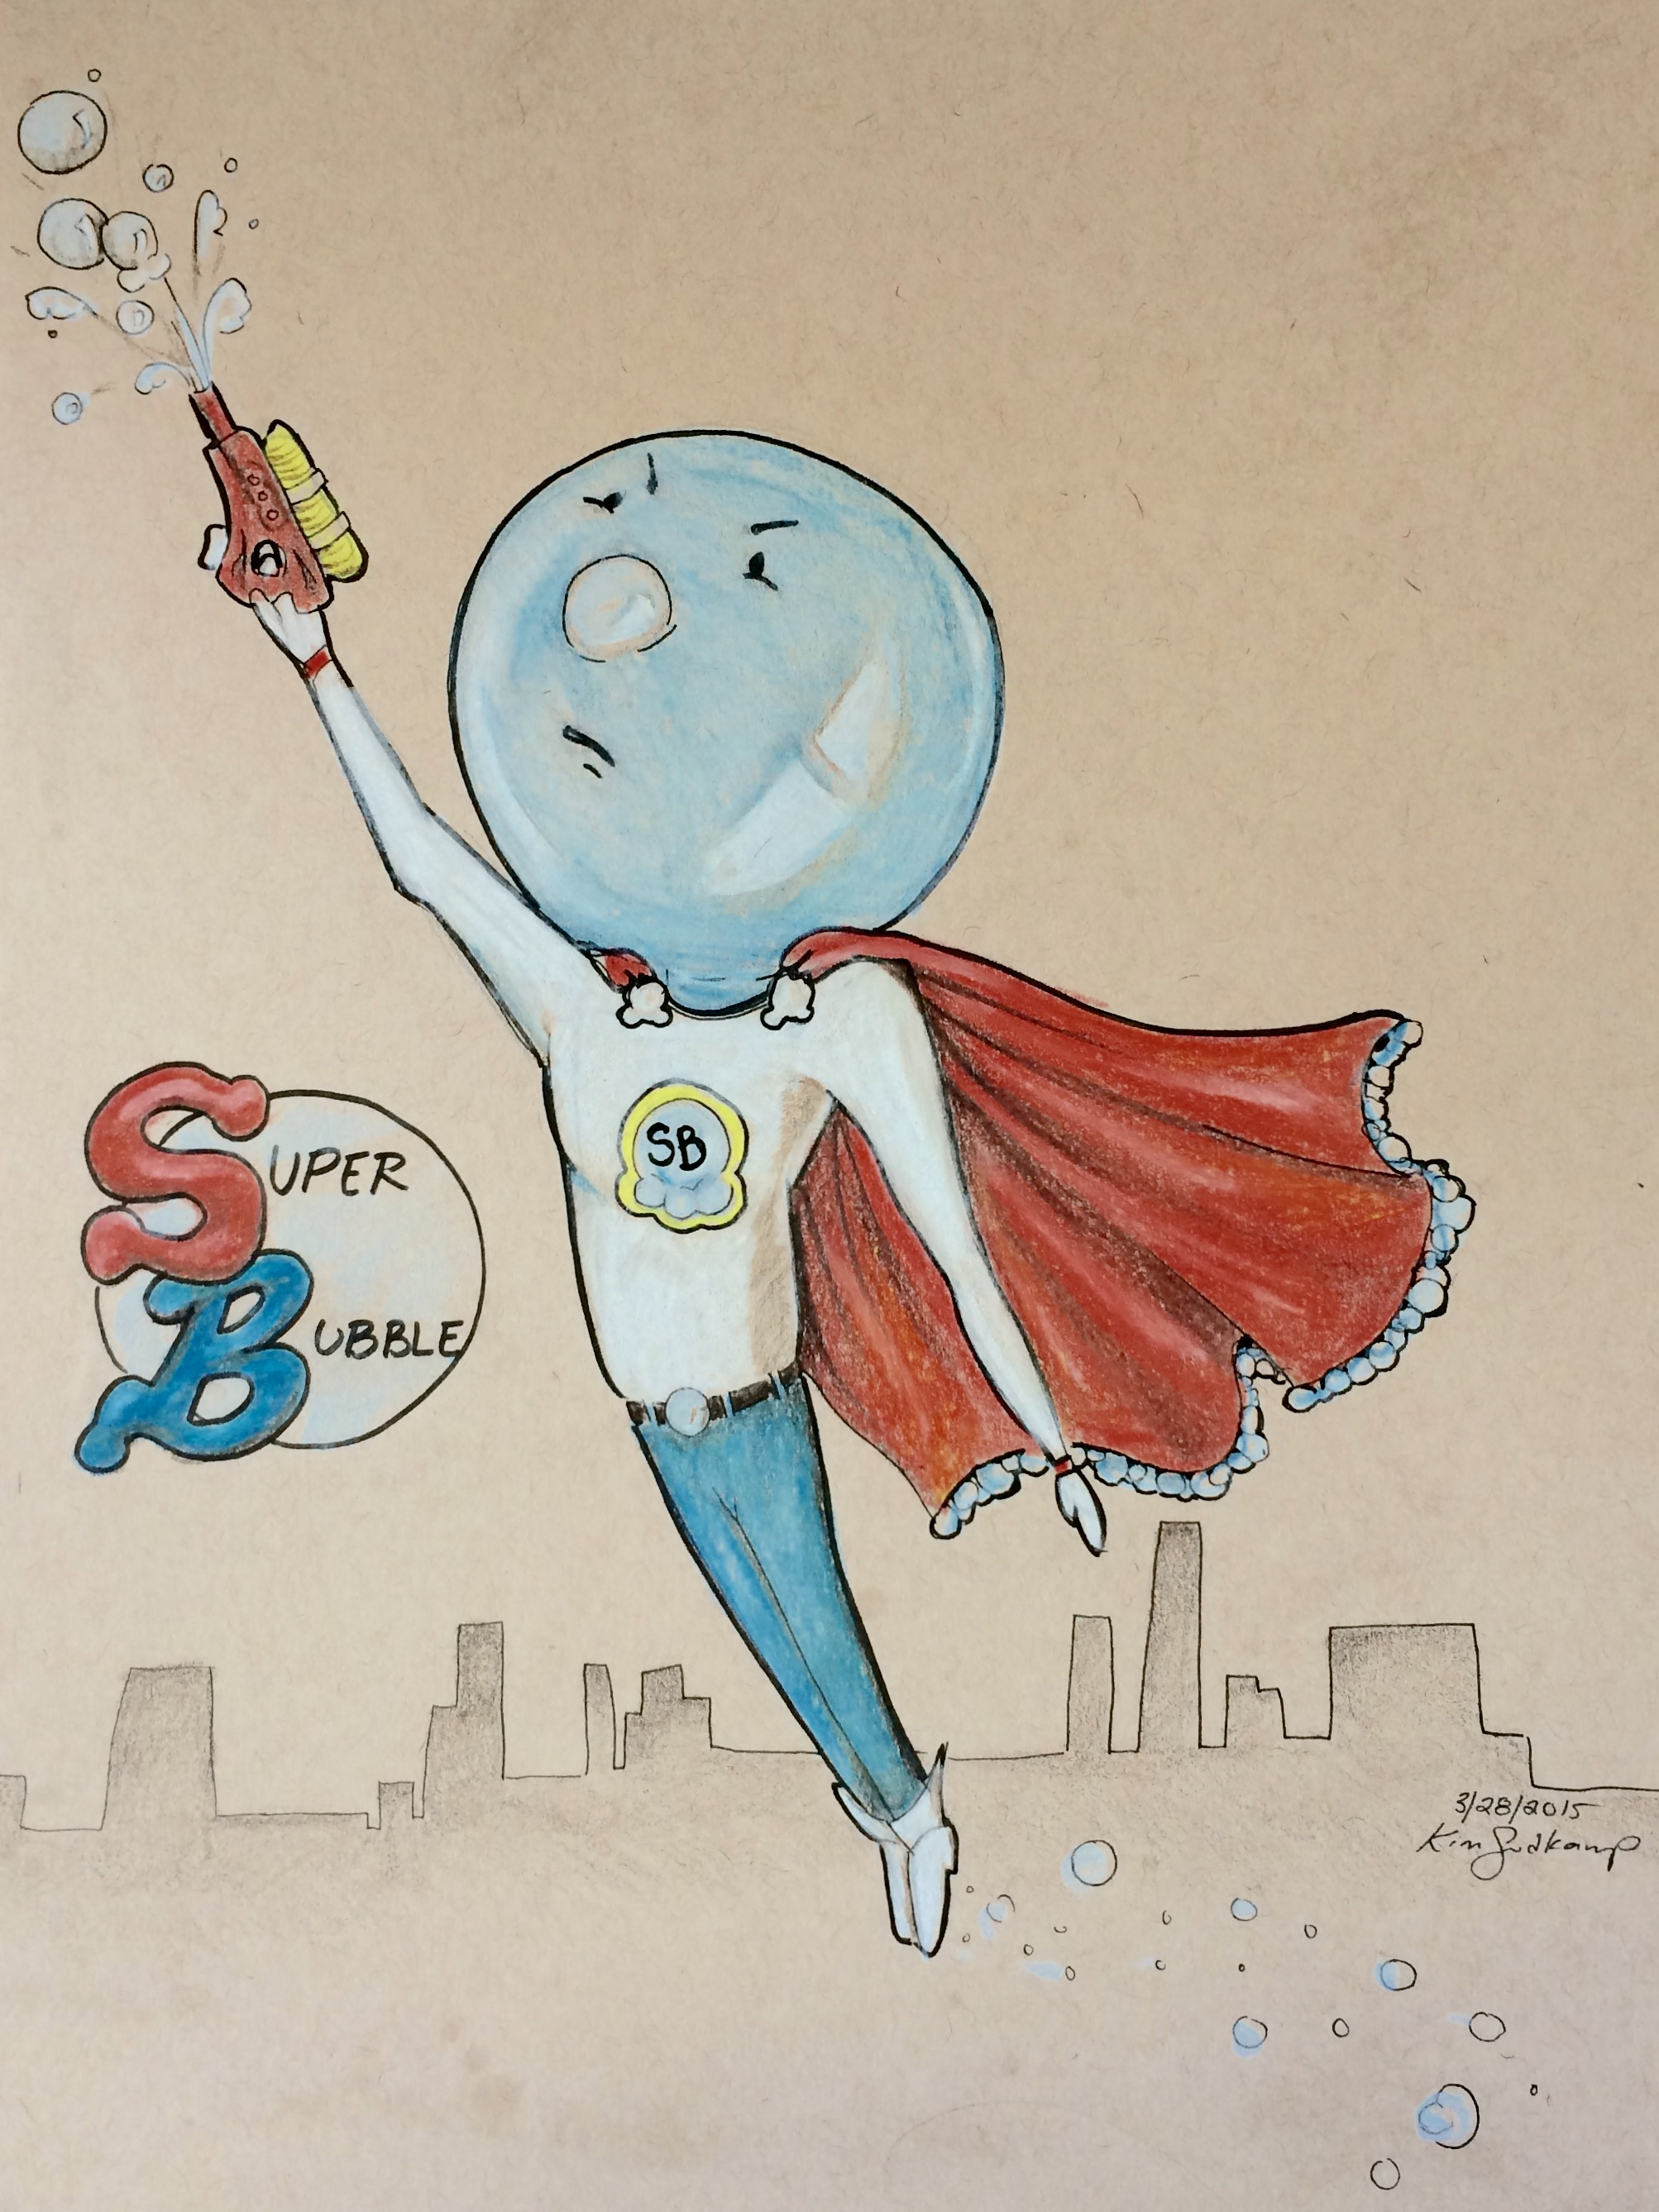 Super Bubble Man!